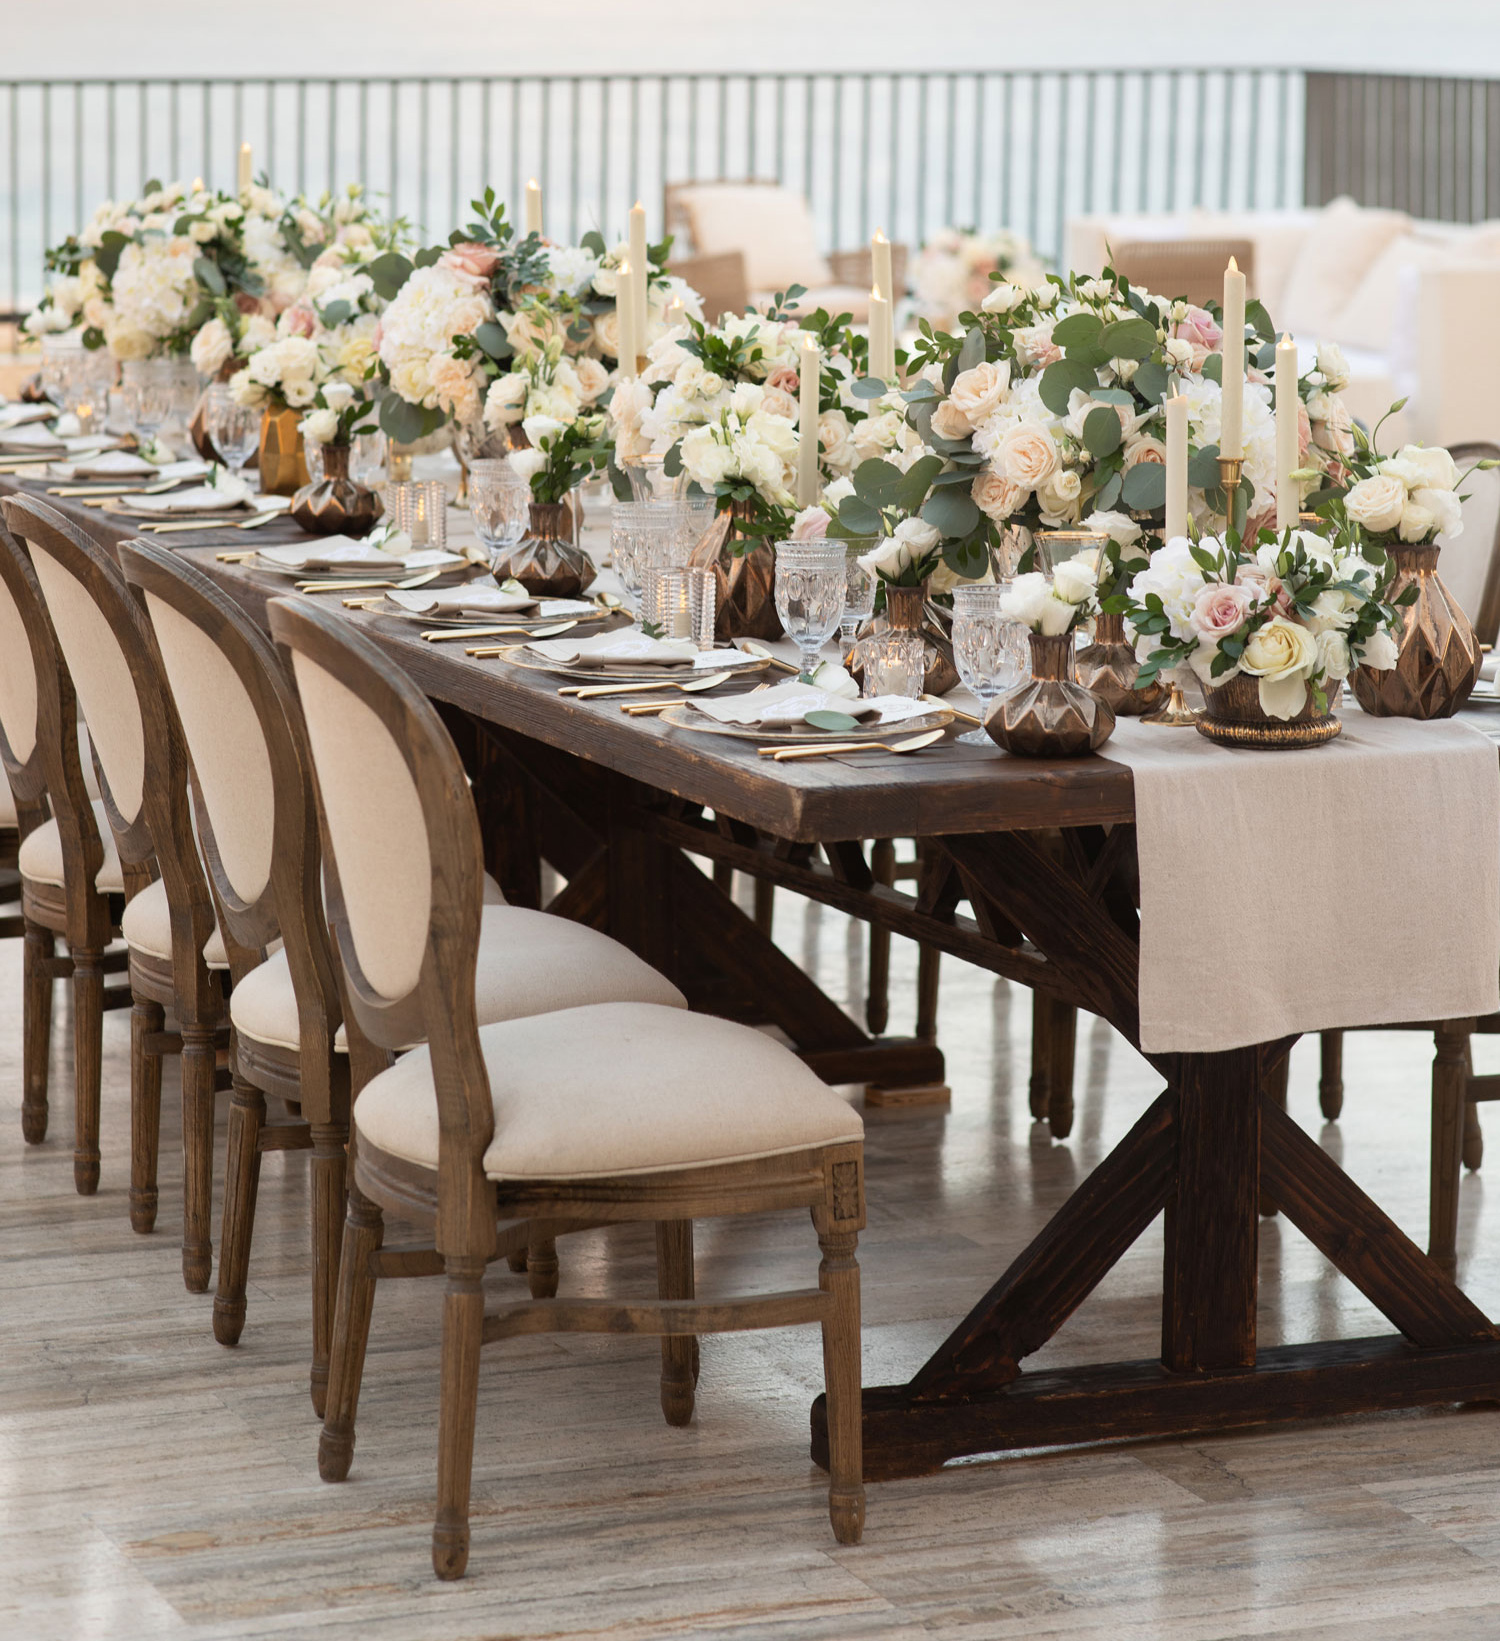 outdoor wedding reception on balcony with wooden & fabric chairs, fake candles and eucalyptus